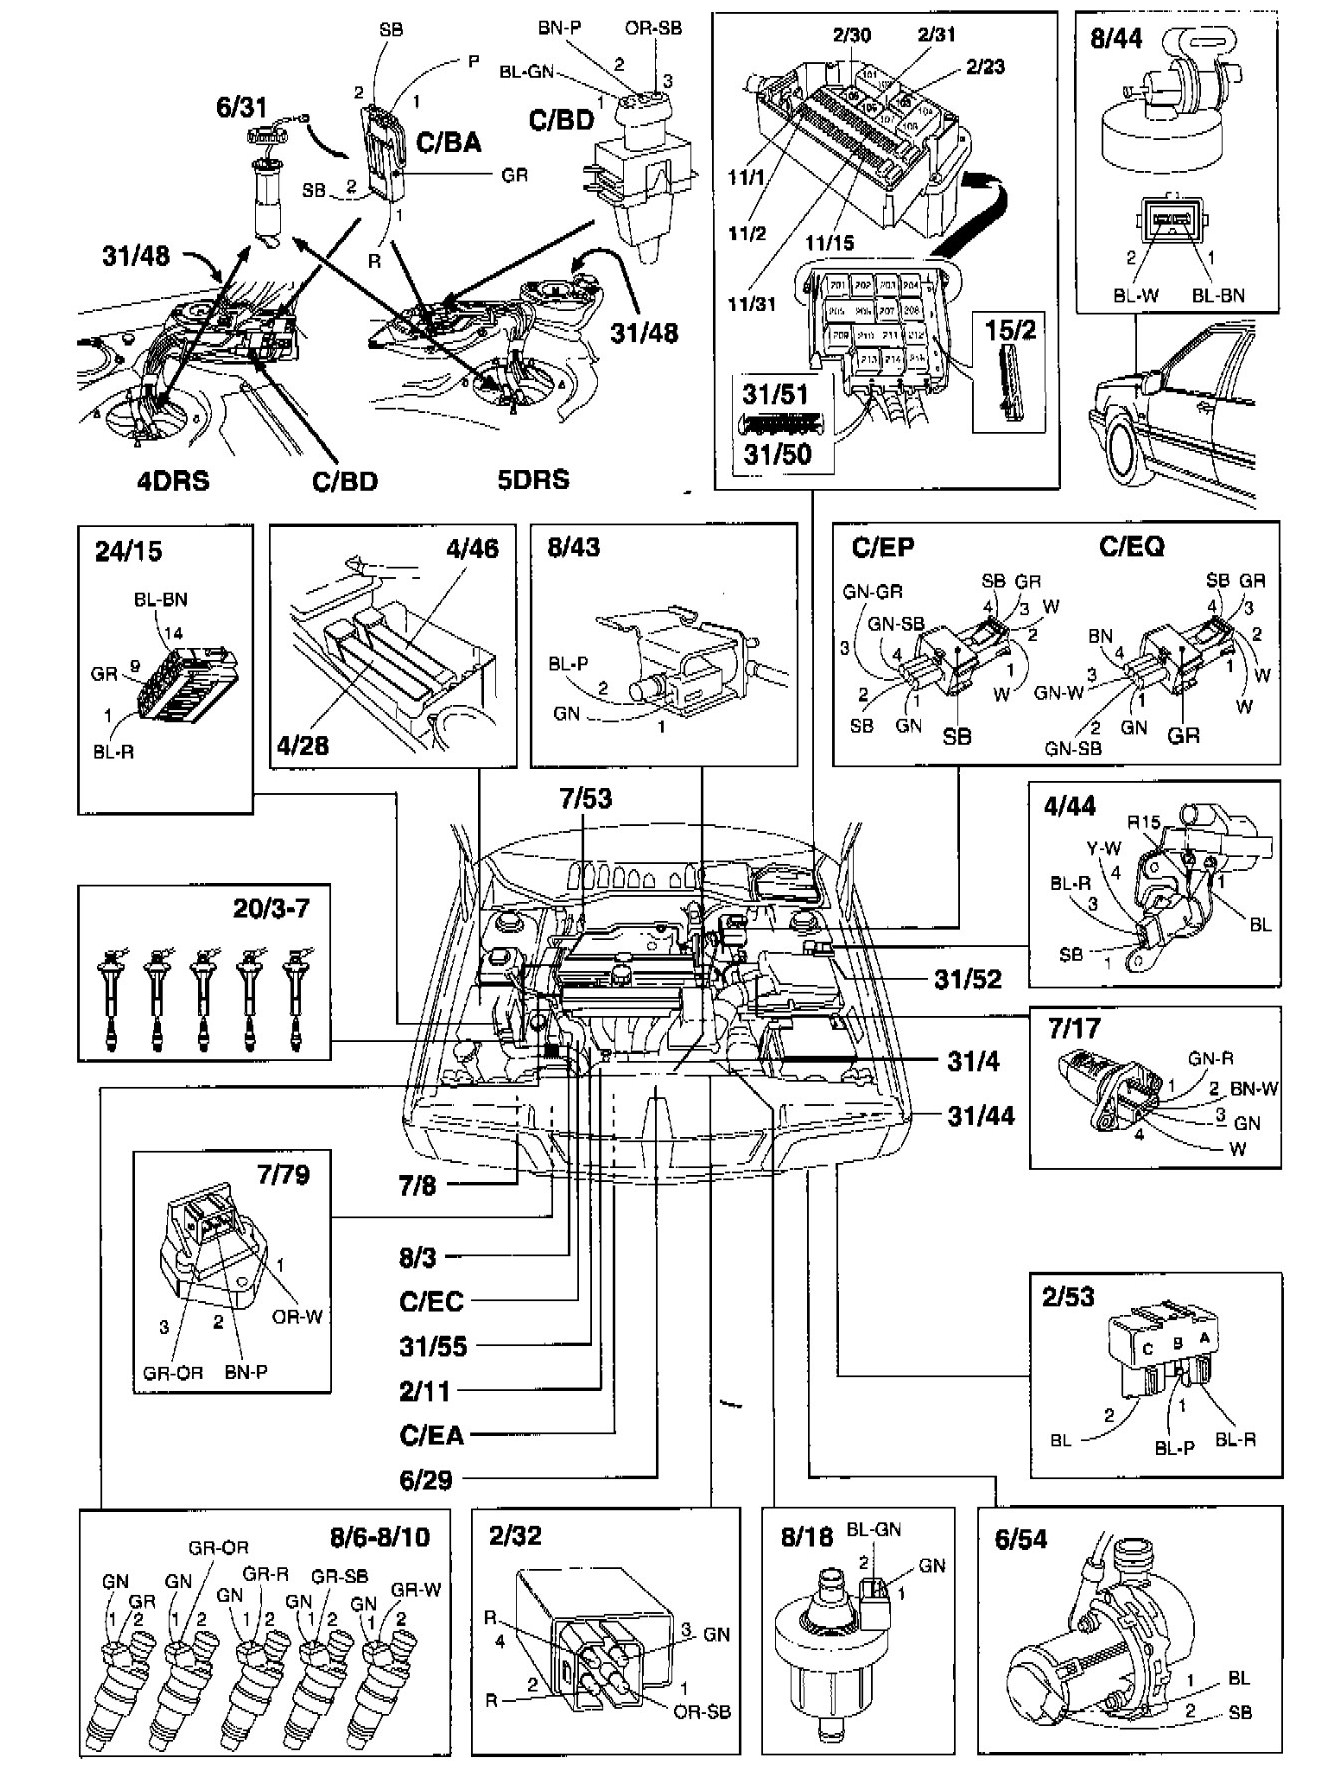 Serpentine Belt Diagram 2000 Ford Focus Wagon Schematics Data 2007 F 150 Parts Also 2002 2001 Volvo S40 Cooling System Free Engine Image For User Manual Download